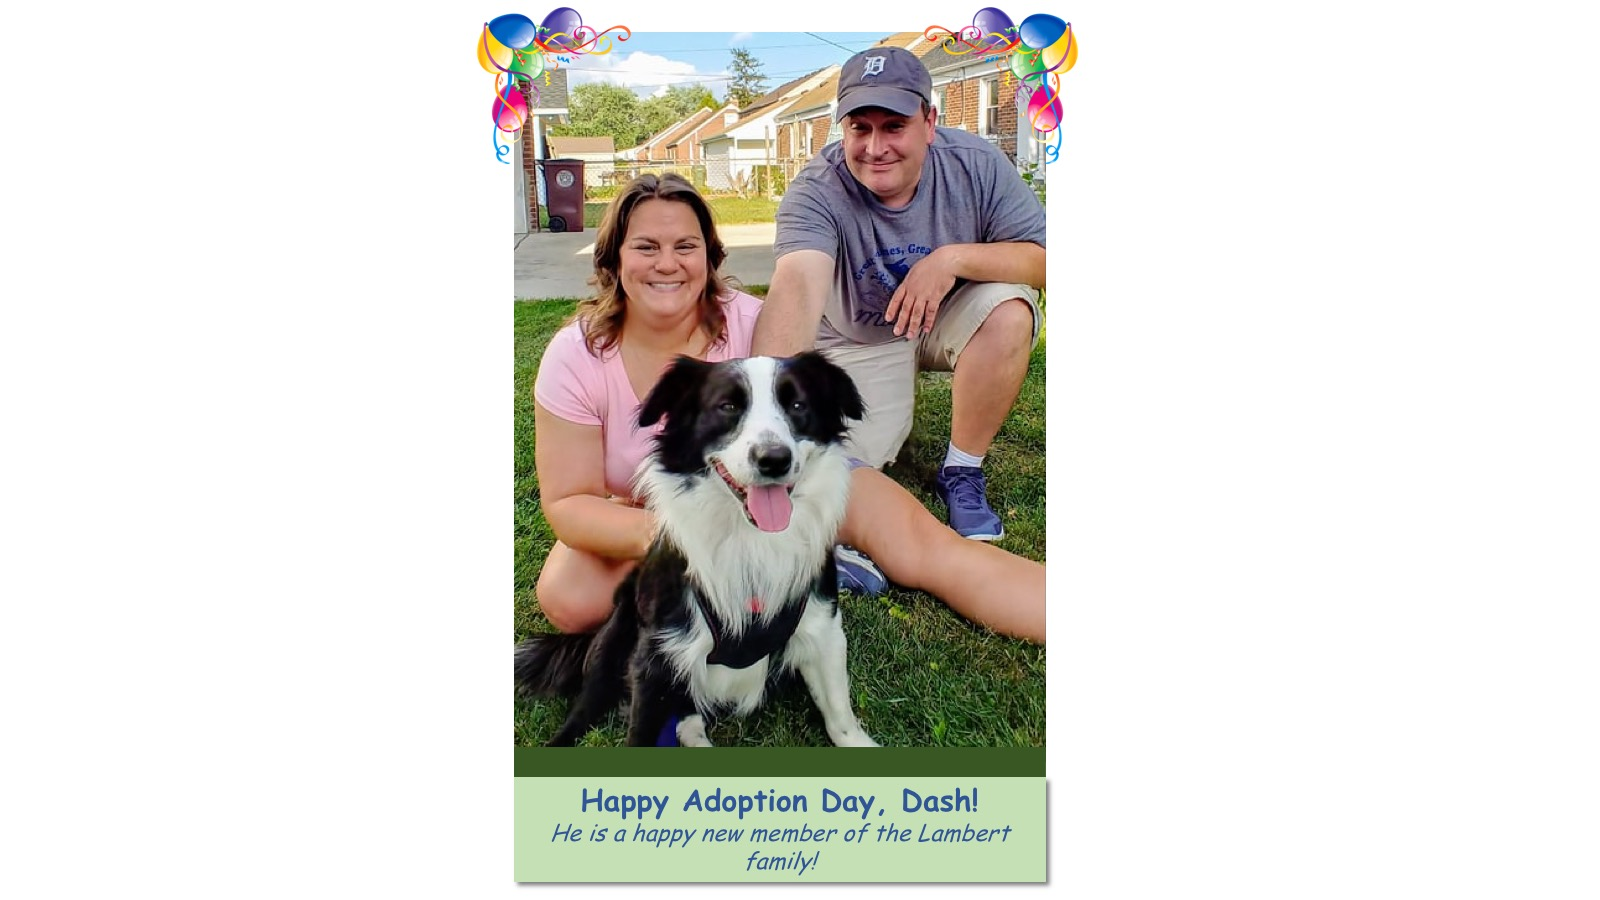 Dash_Adoption_Photo_2018.jpg